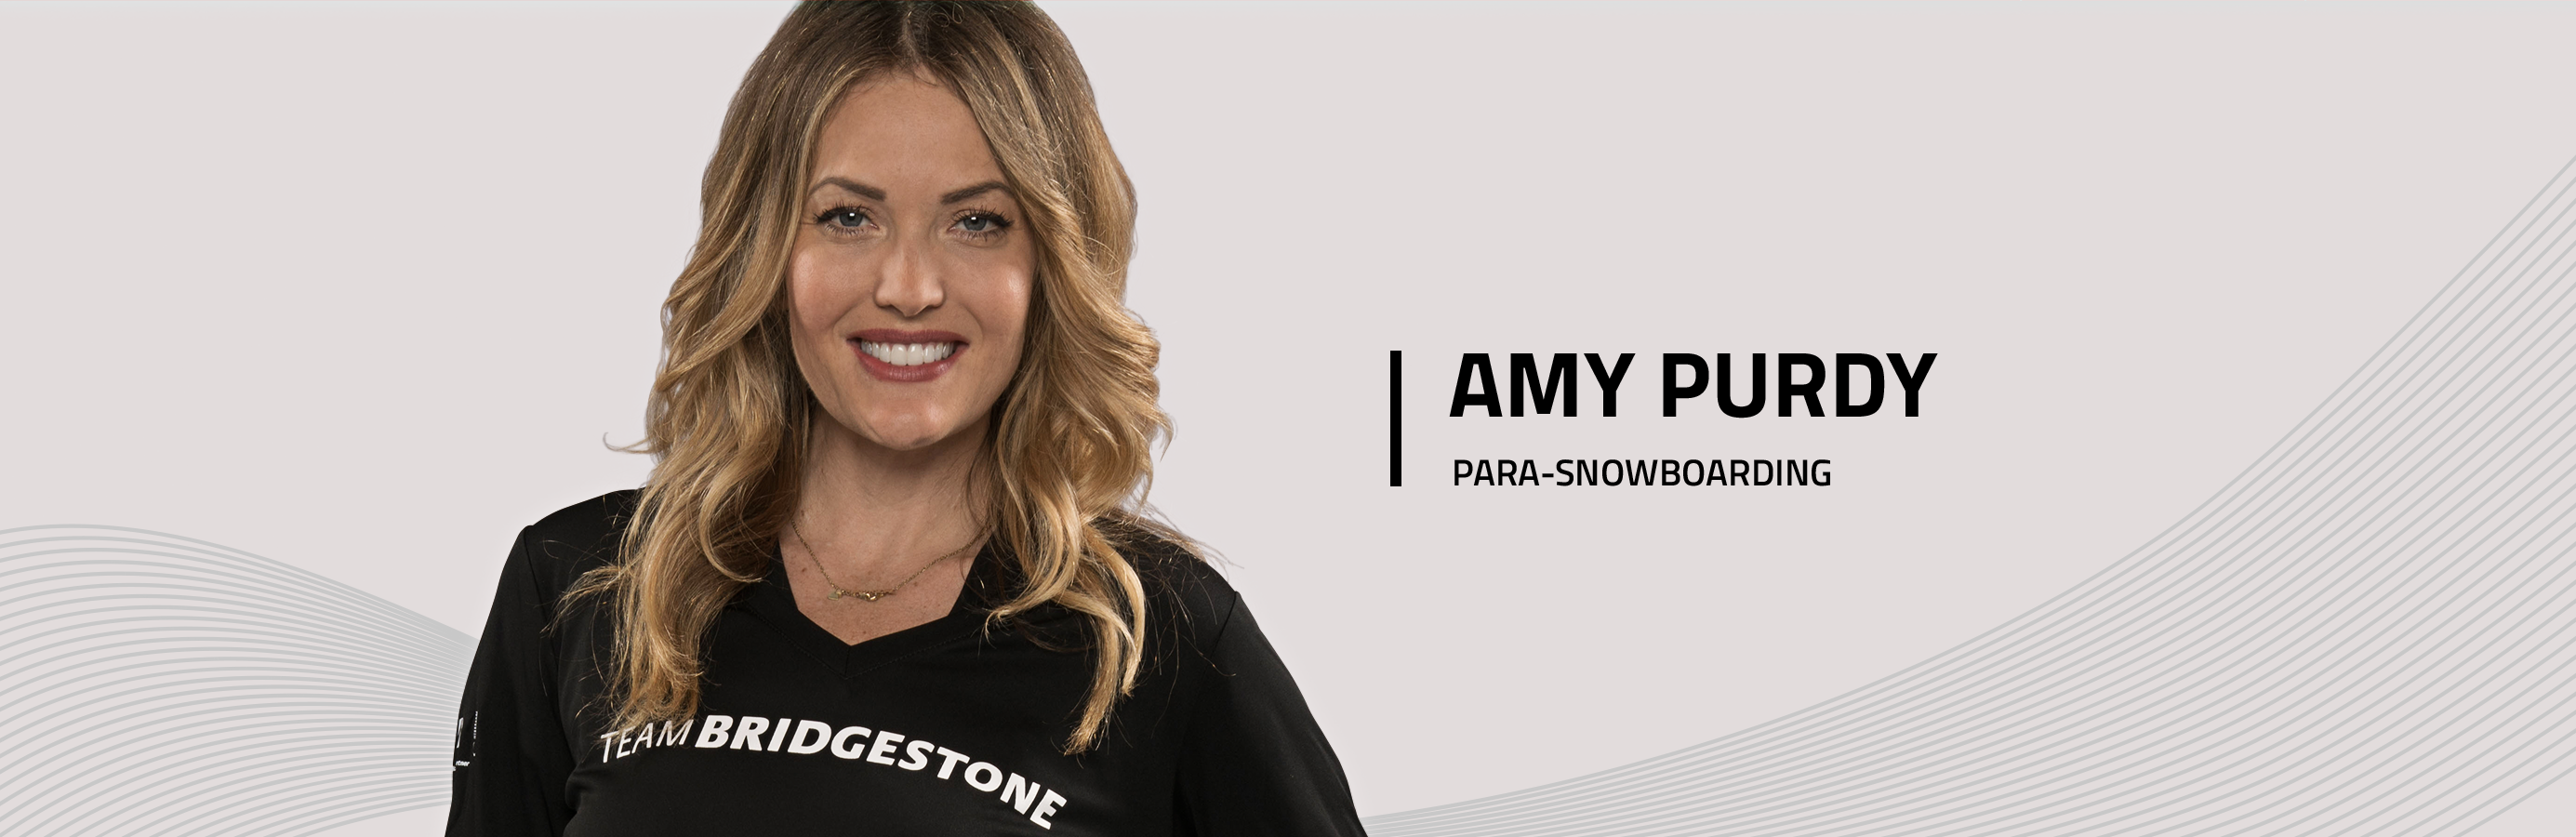 Bridgestone Olympic Partner Amy Purdy